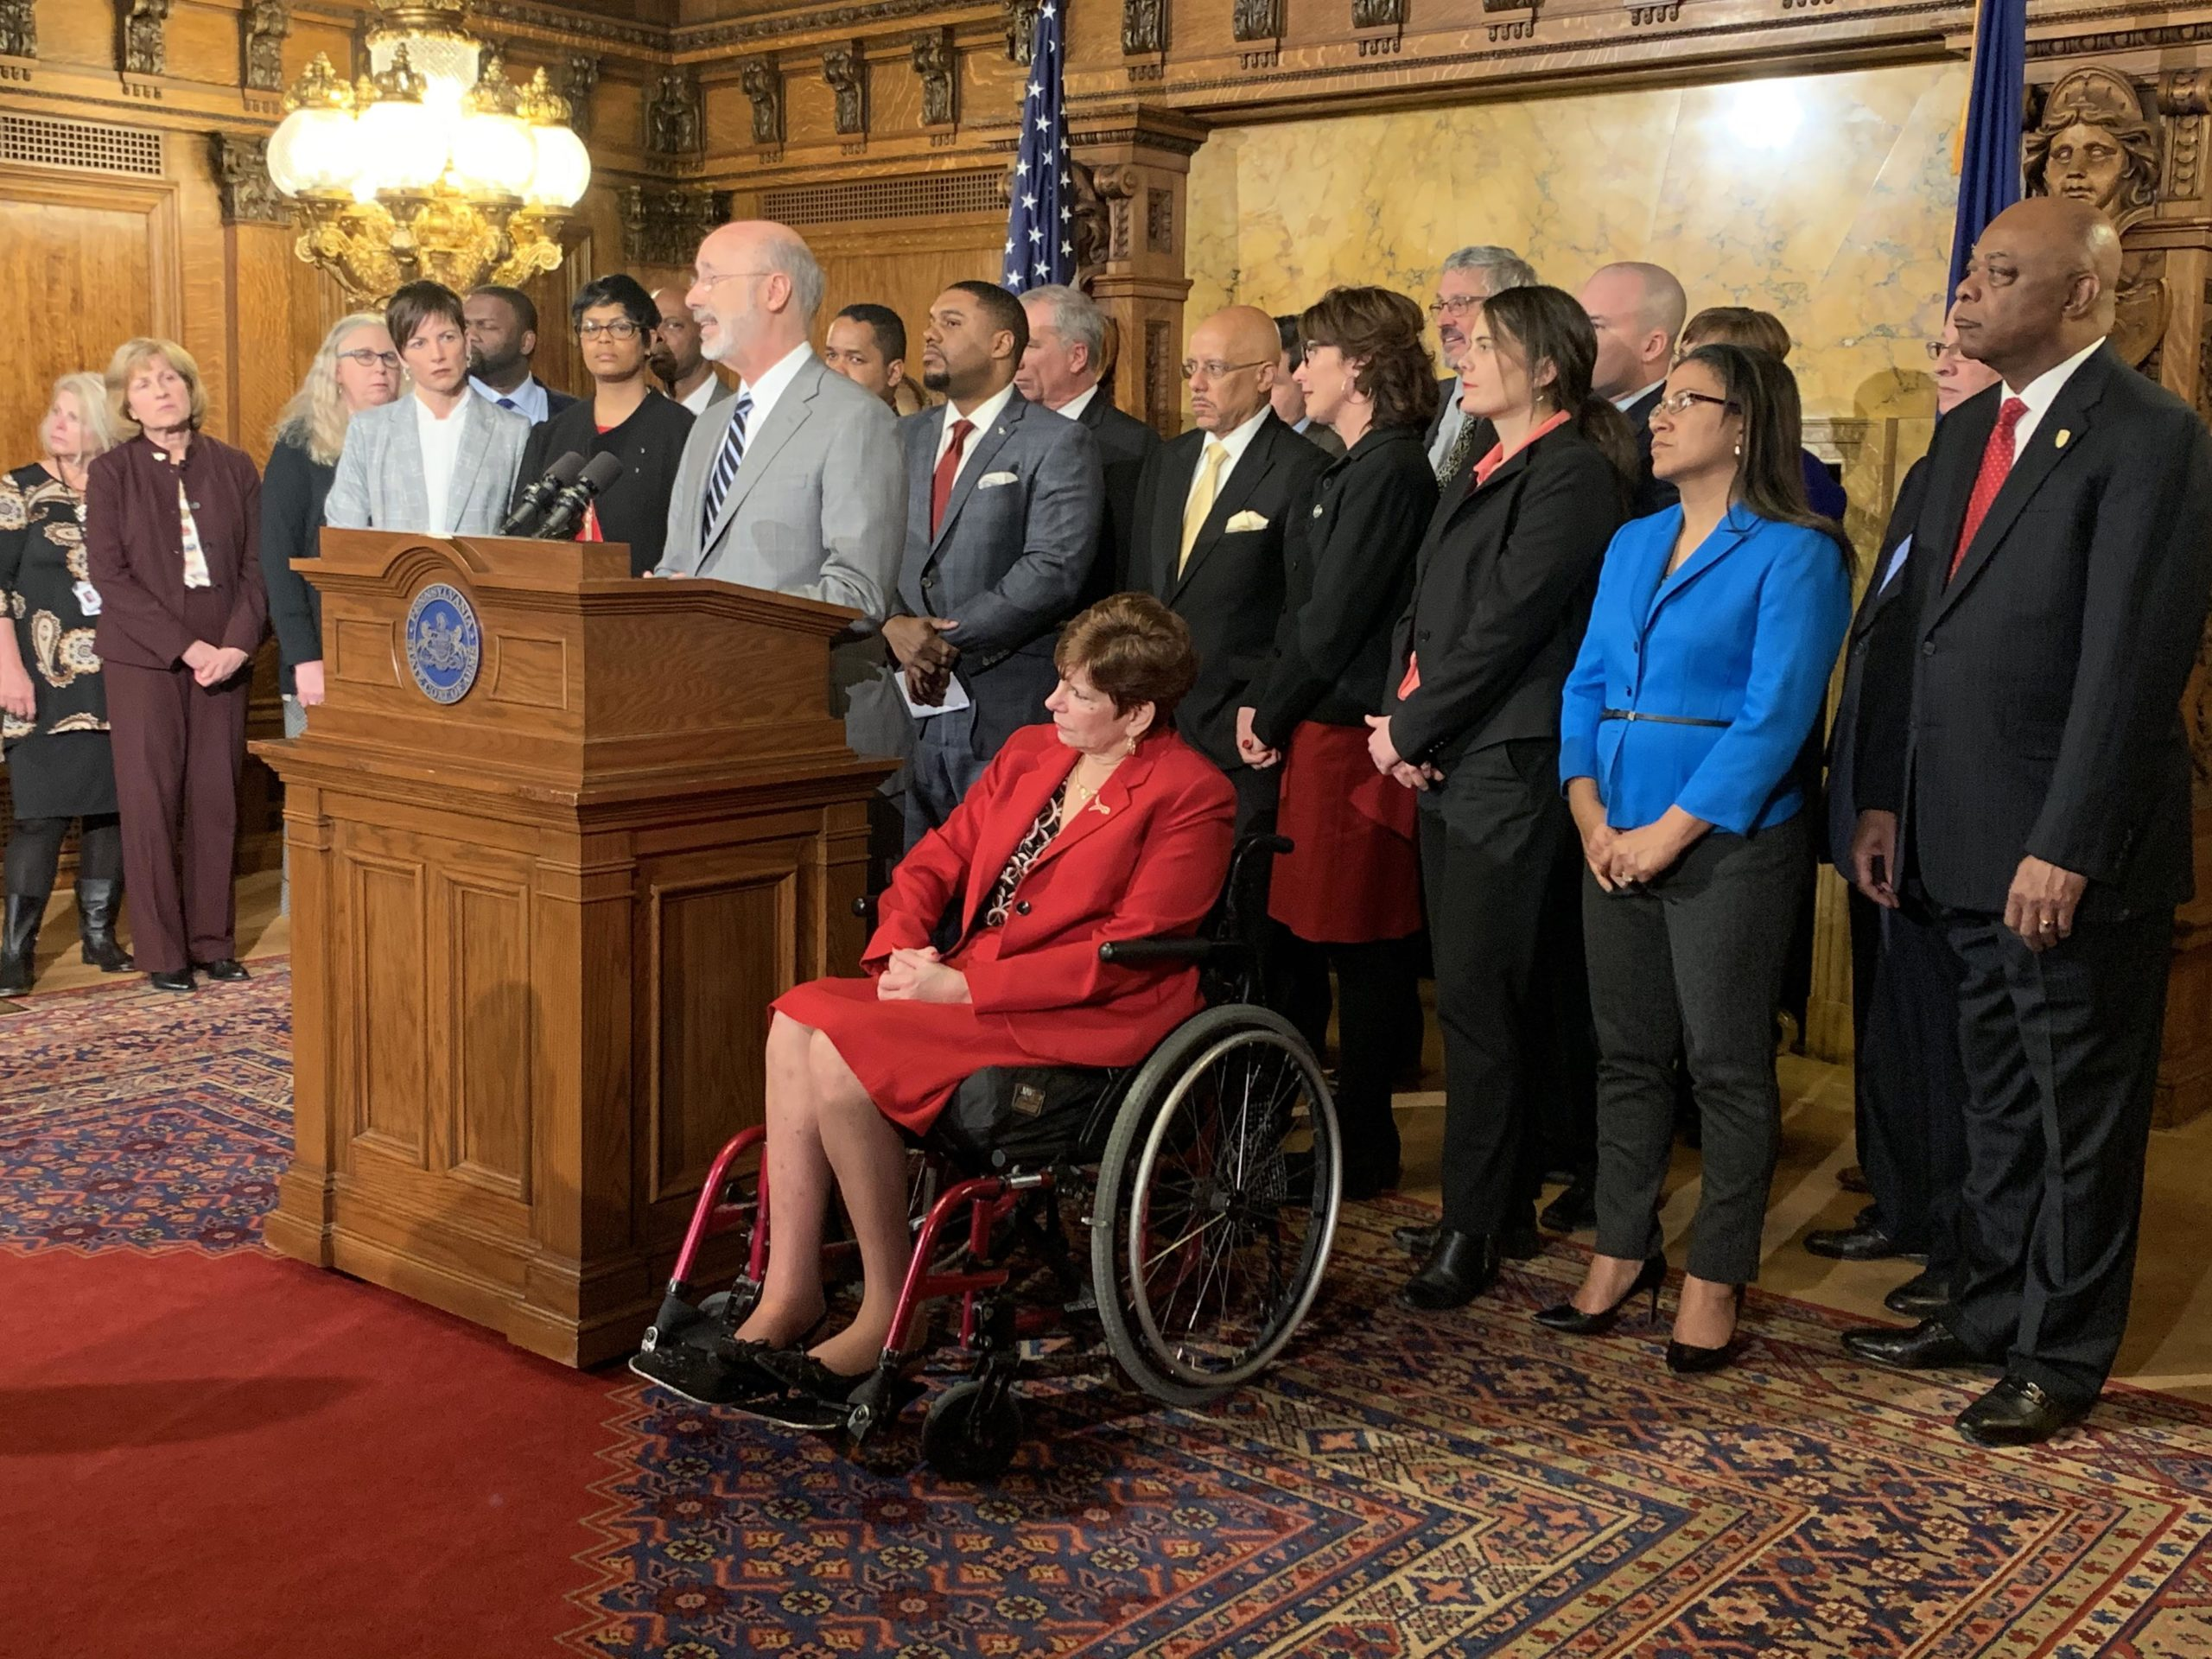 Photo: Governor Wolf and PFT announcing plan